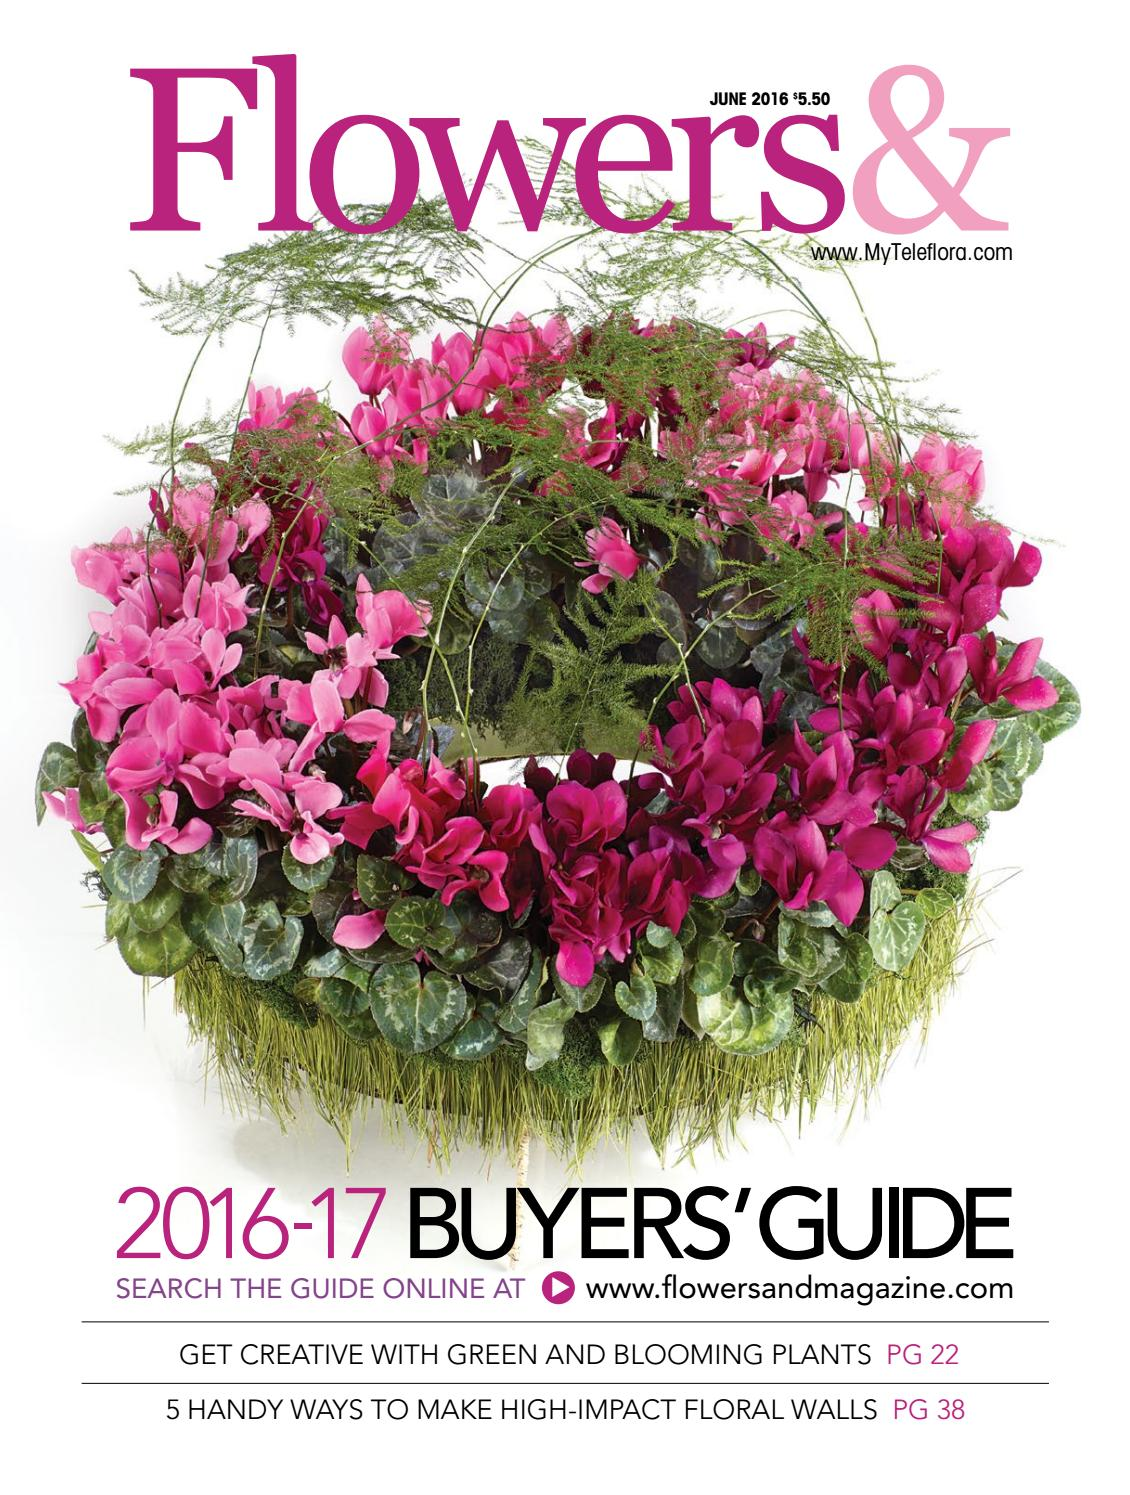 beautiful dogwood branches in large glass vase beautiful.htm flowers  june 2016 by teleflora issuu  flowers  june 2016 by teleflora issuu